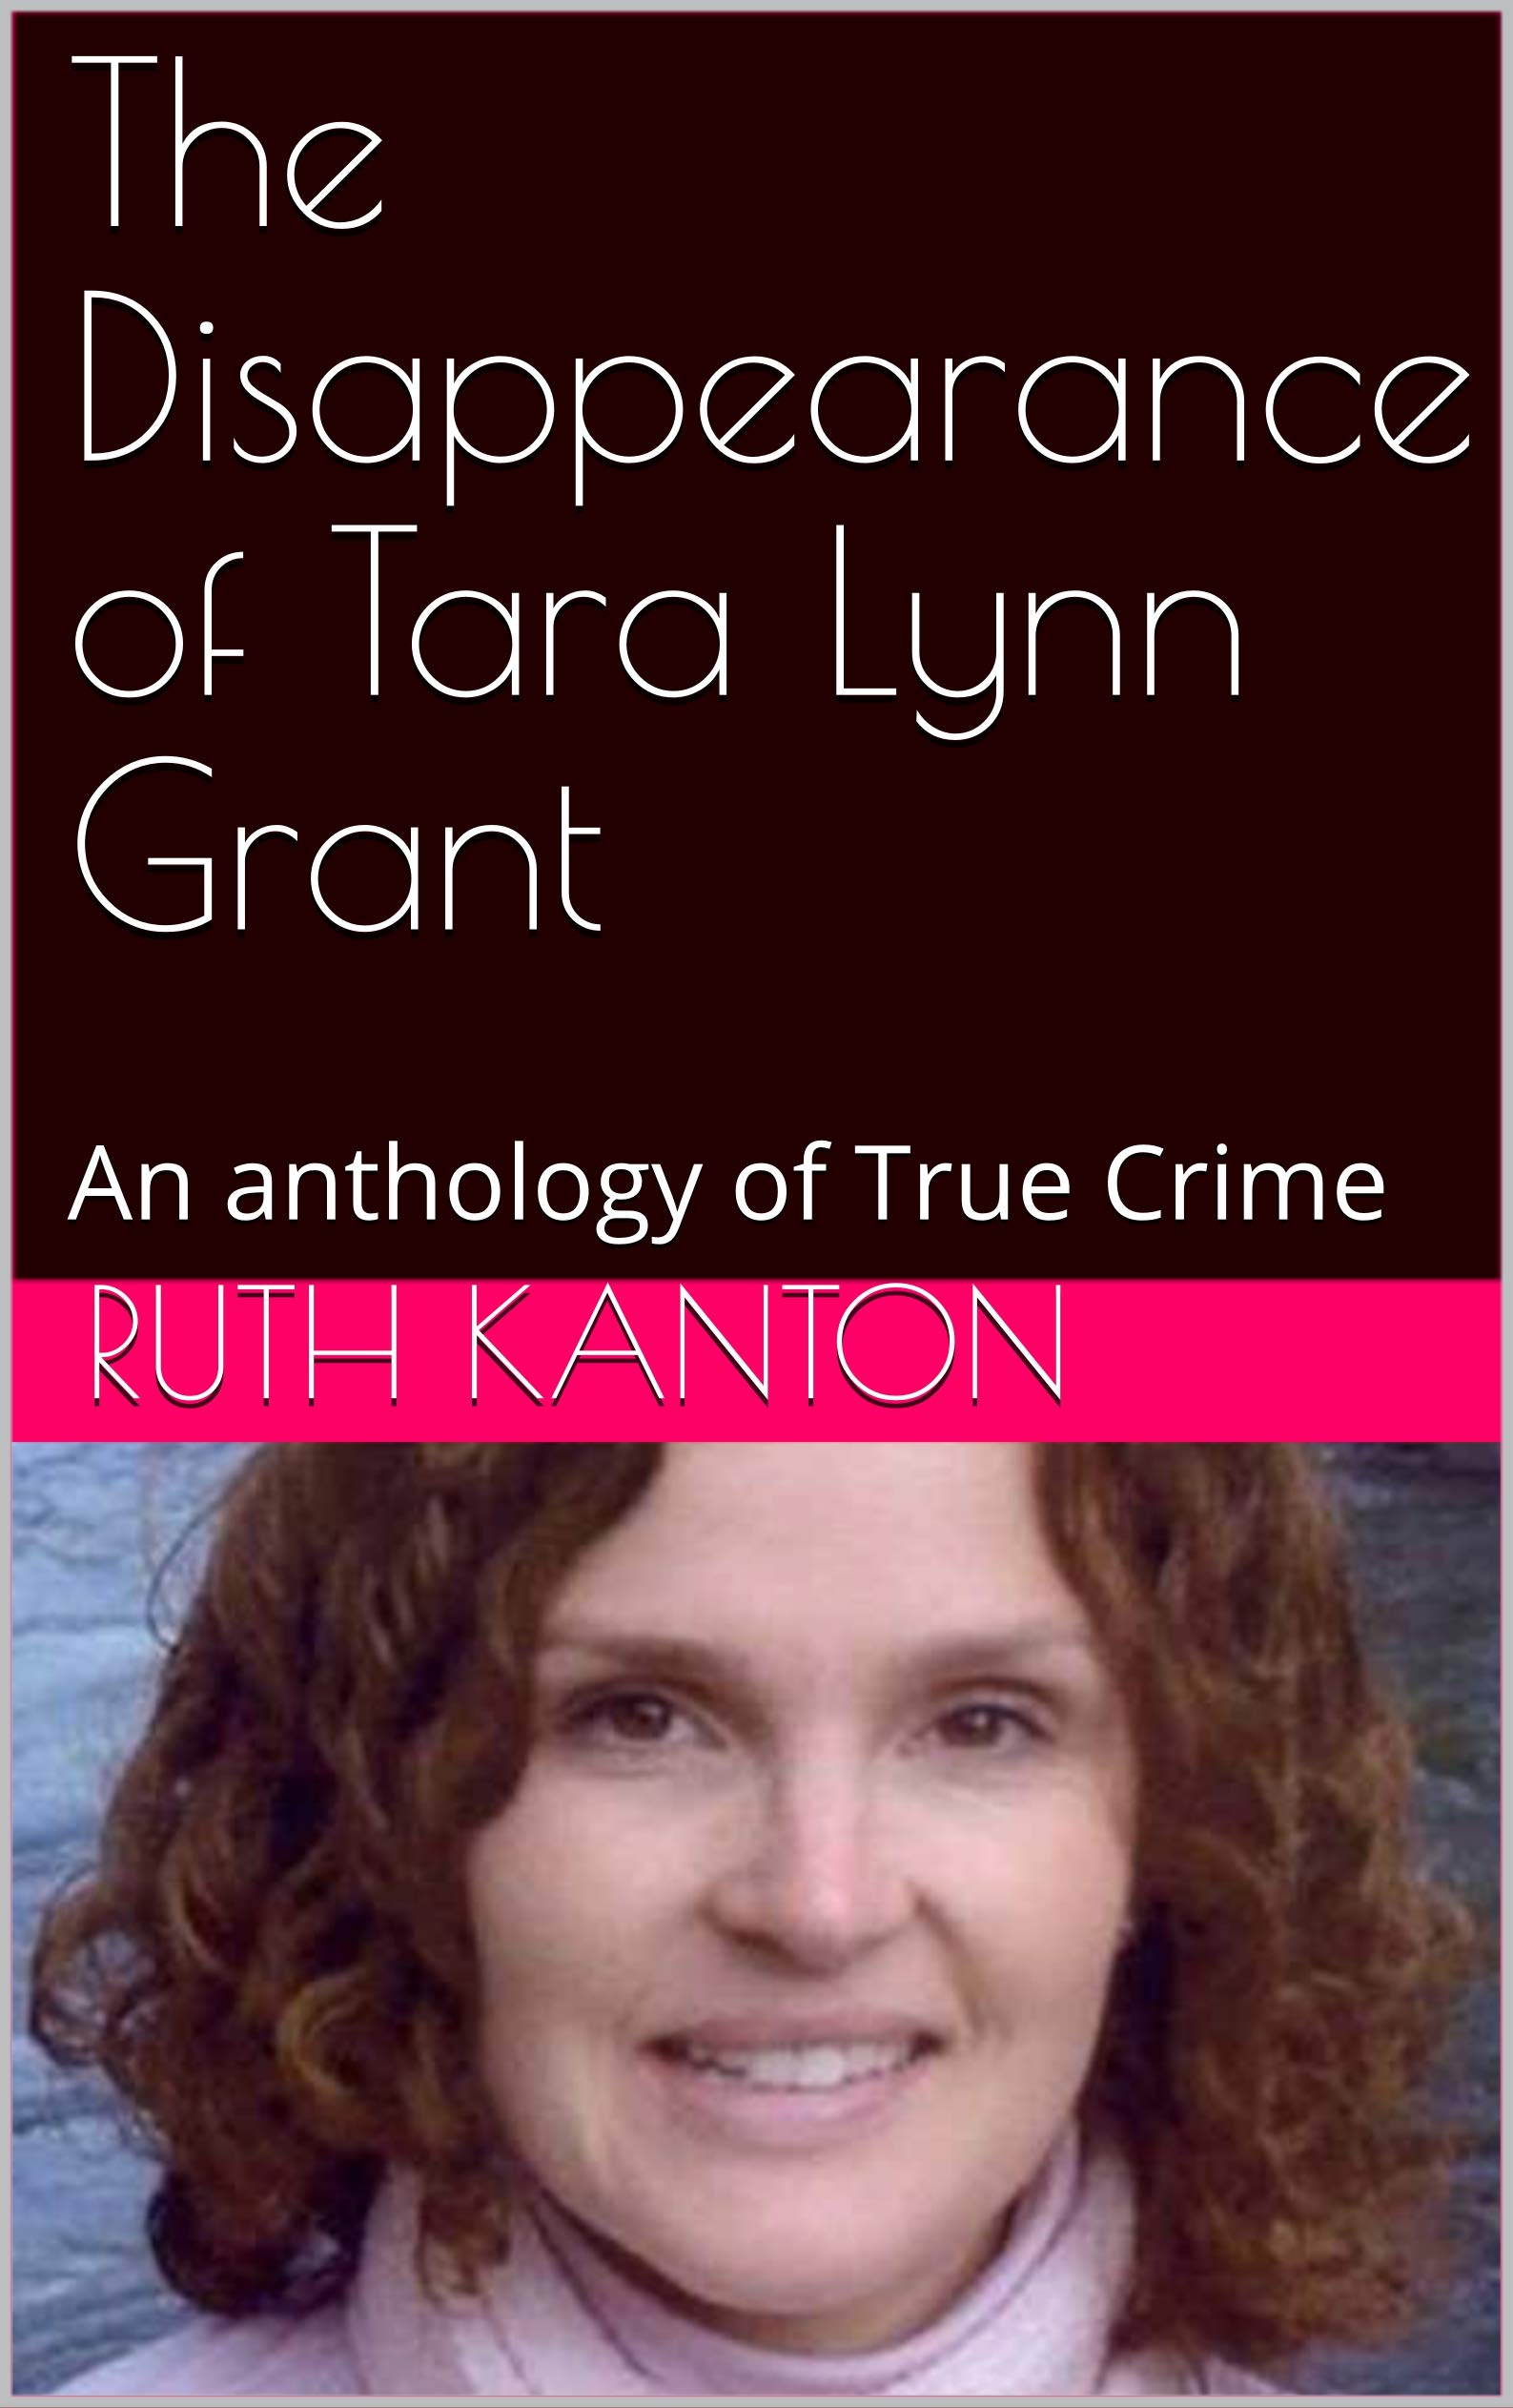 The Disappearance of Tara Lynn Grant: An anthology of True Crime